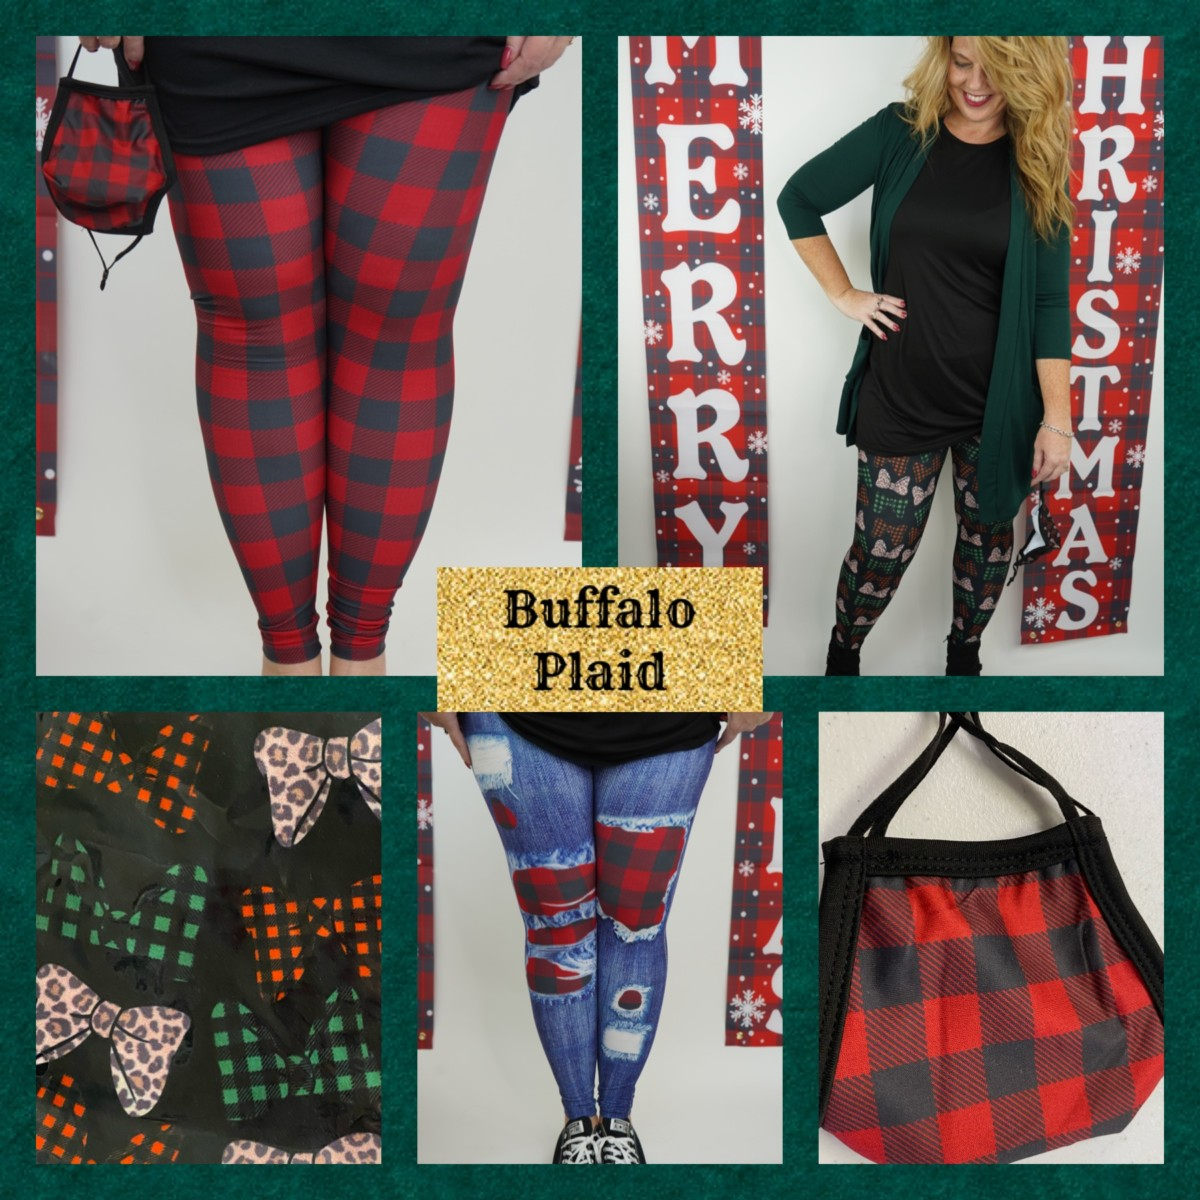 Be Fashionable & Fabulous this Holiday Season with Magical Outfits & Accessories! 20